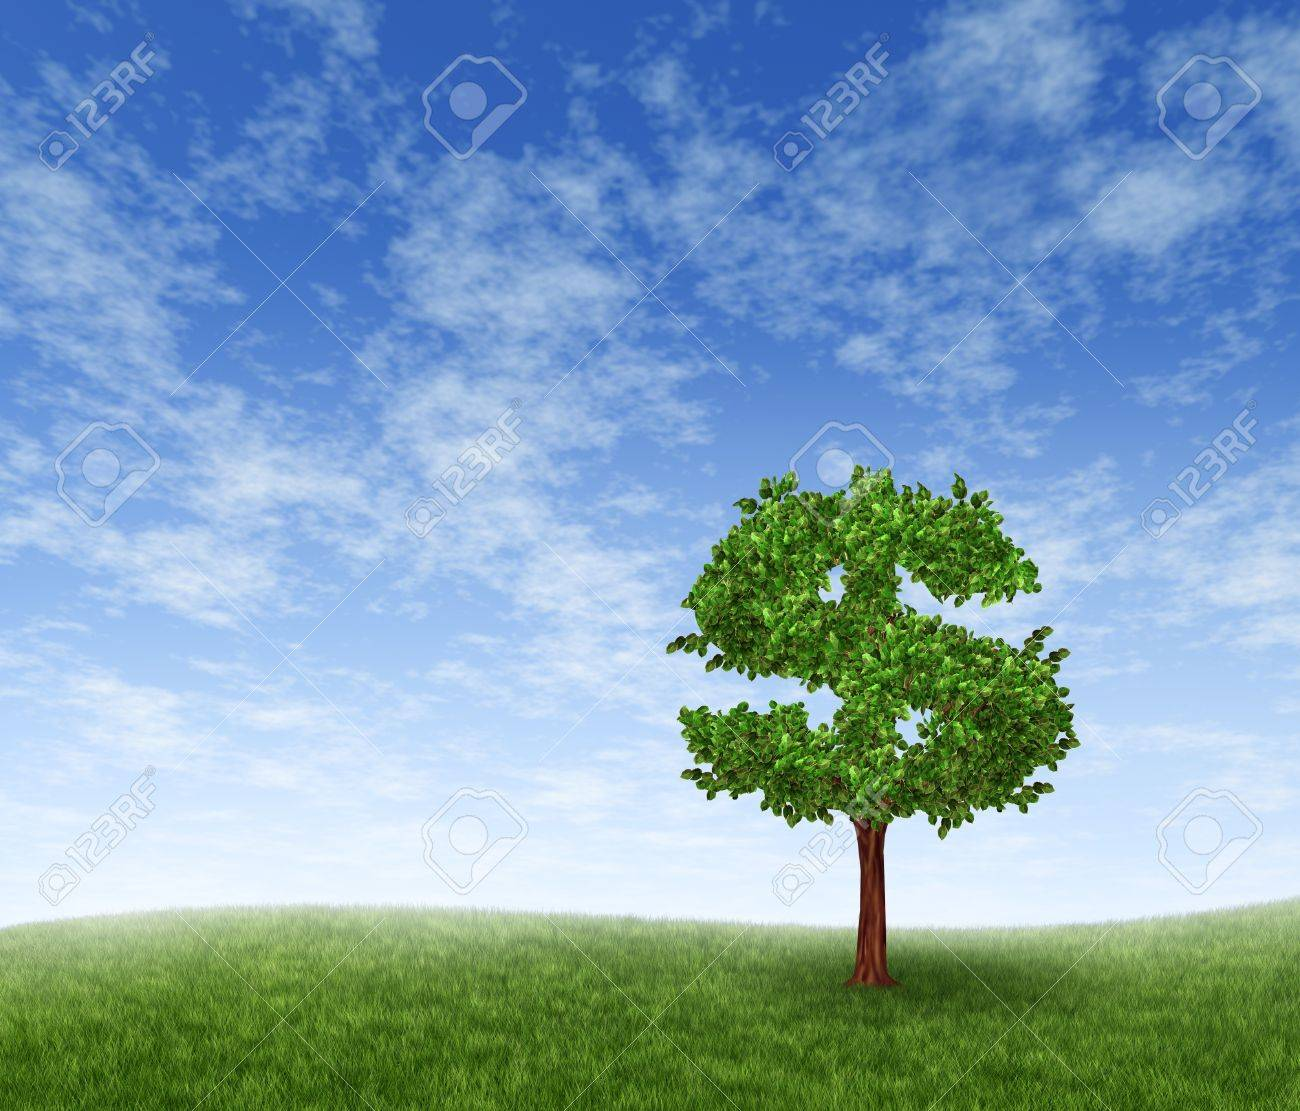 Financial growth and success on a green summer landscape with a single tree in the shape of a dollar sign on a rolling grass hill with a blue sky with clouds showing a business concept of growing prosperity and investments. Stock Photo - 12024526